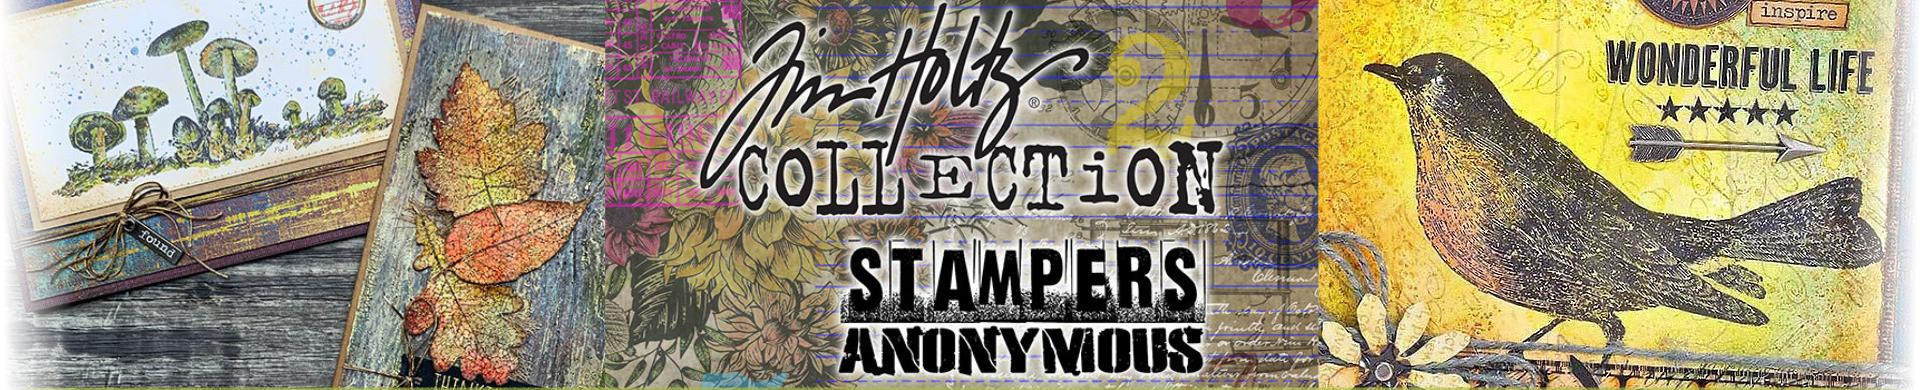 Tim Holtz Rubber Stamps - Flowers, Leaves, Birds & Butterflies